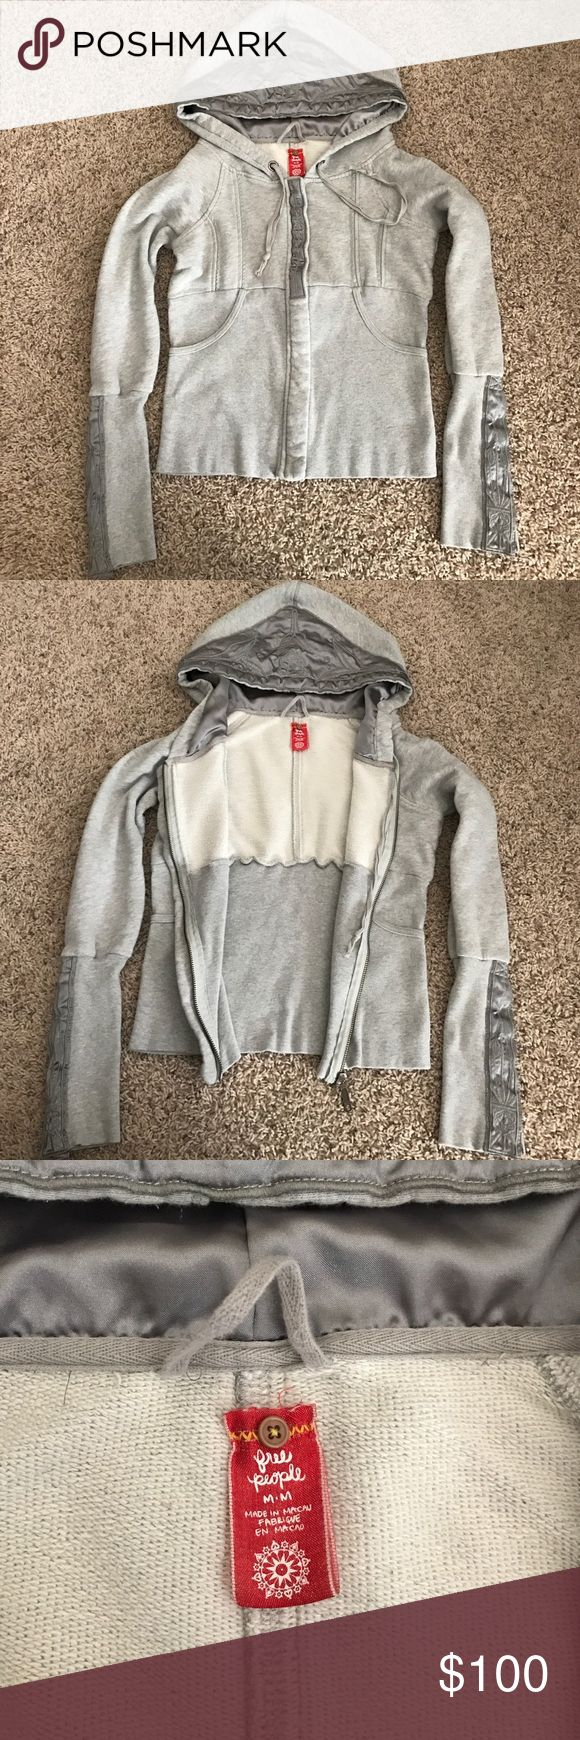 Free People zip up hoodie sweater Grey zip up hoodie, sleeve and hood detail with embroidery (see photos). Free People Jackets & Coats